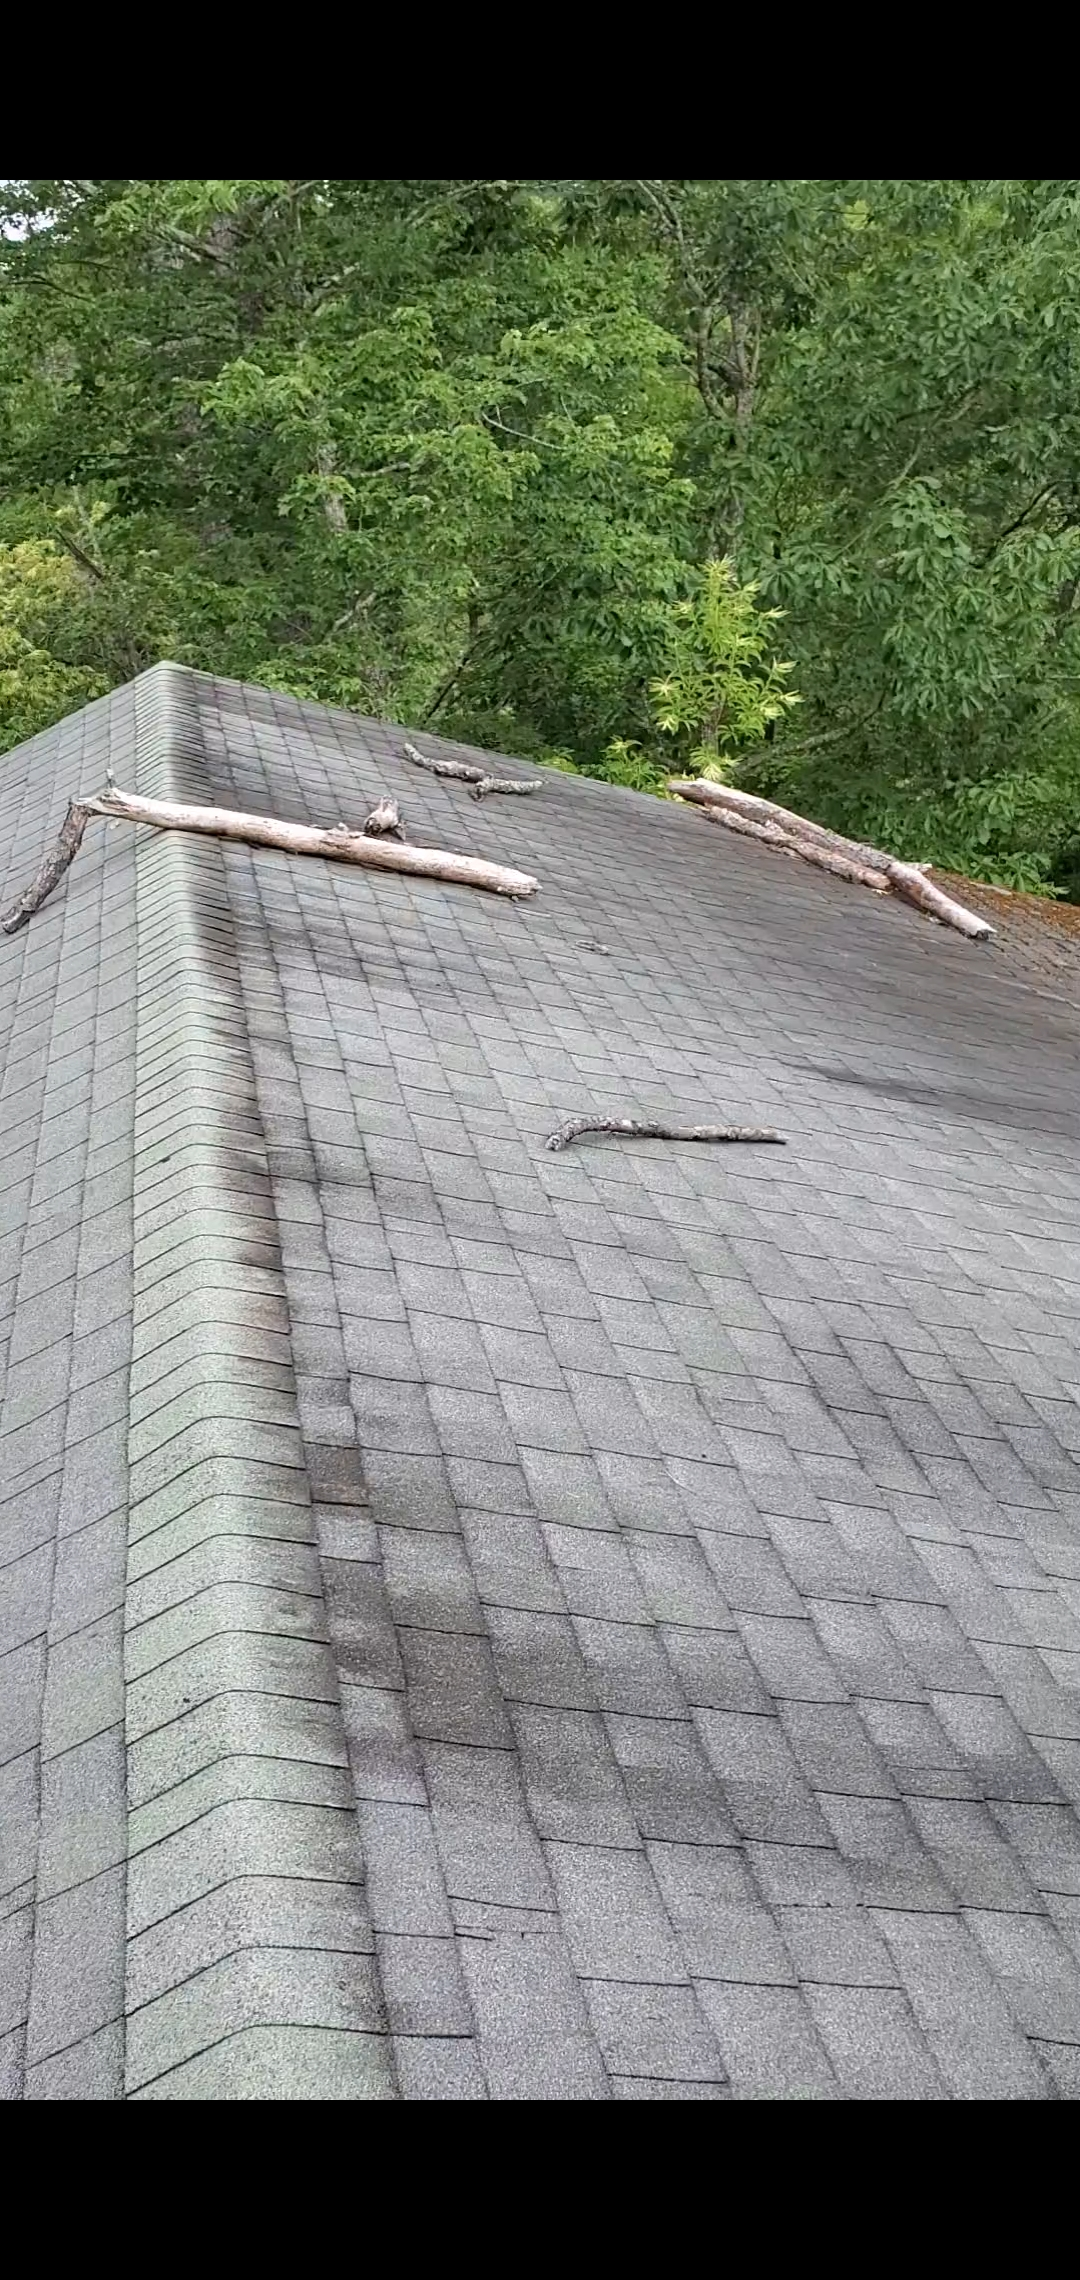 This is a picture of tree limbs that have fallen on the roof.